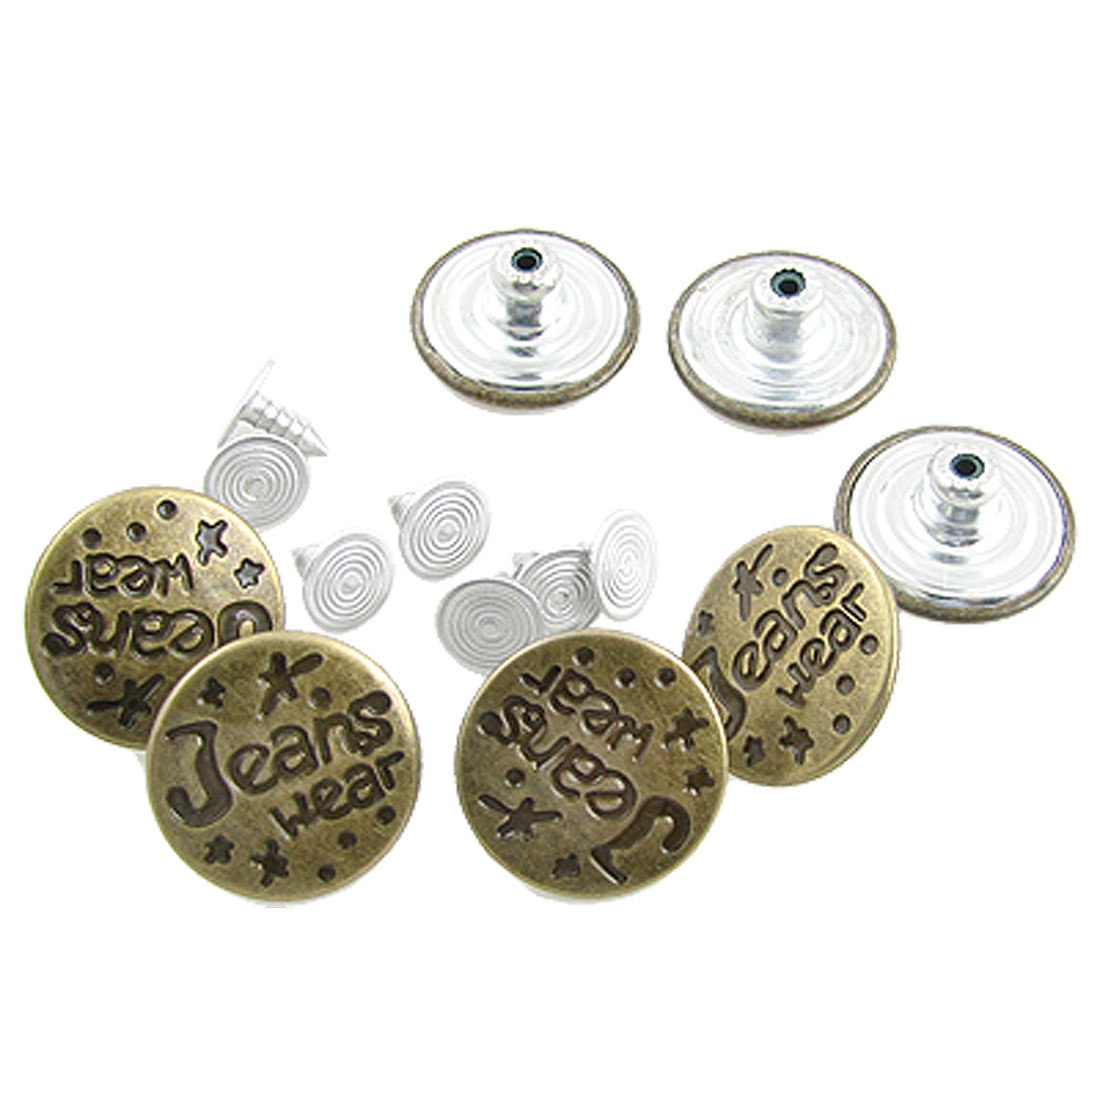 Trousers Jeans Replacement 7 Pcs Bronze Tone Buttons